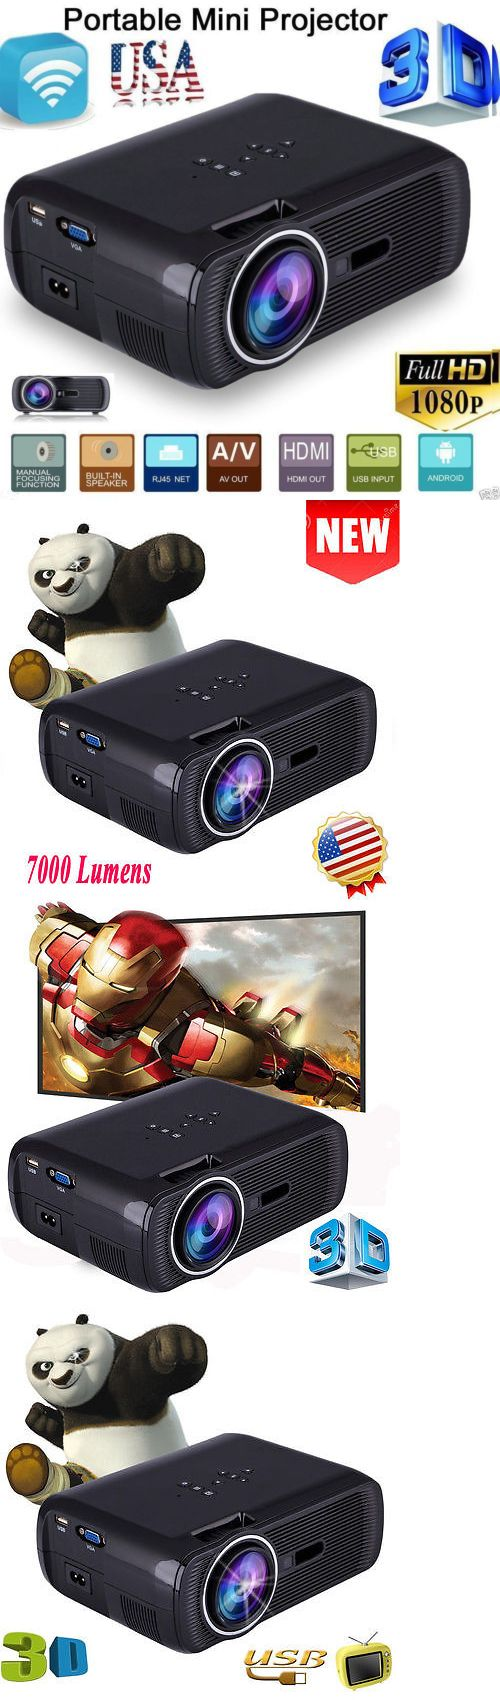 Home Theater Projectors: 7000 Lumens Hd 1080P Home Cinema Theater Multimedia Led Lcd Hdmi 3D Tv Projector -> BUY IT NOW ONLY: $71.99 on eBay!